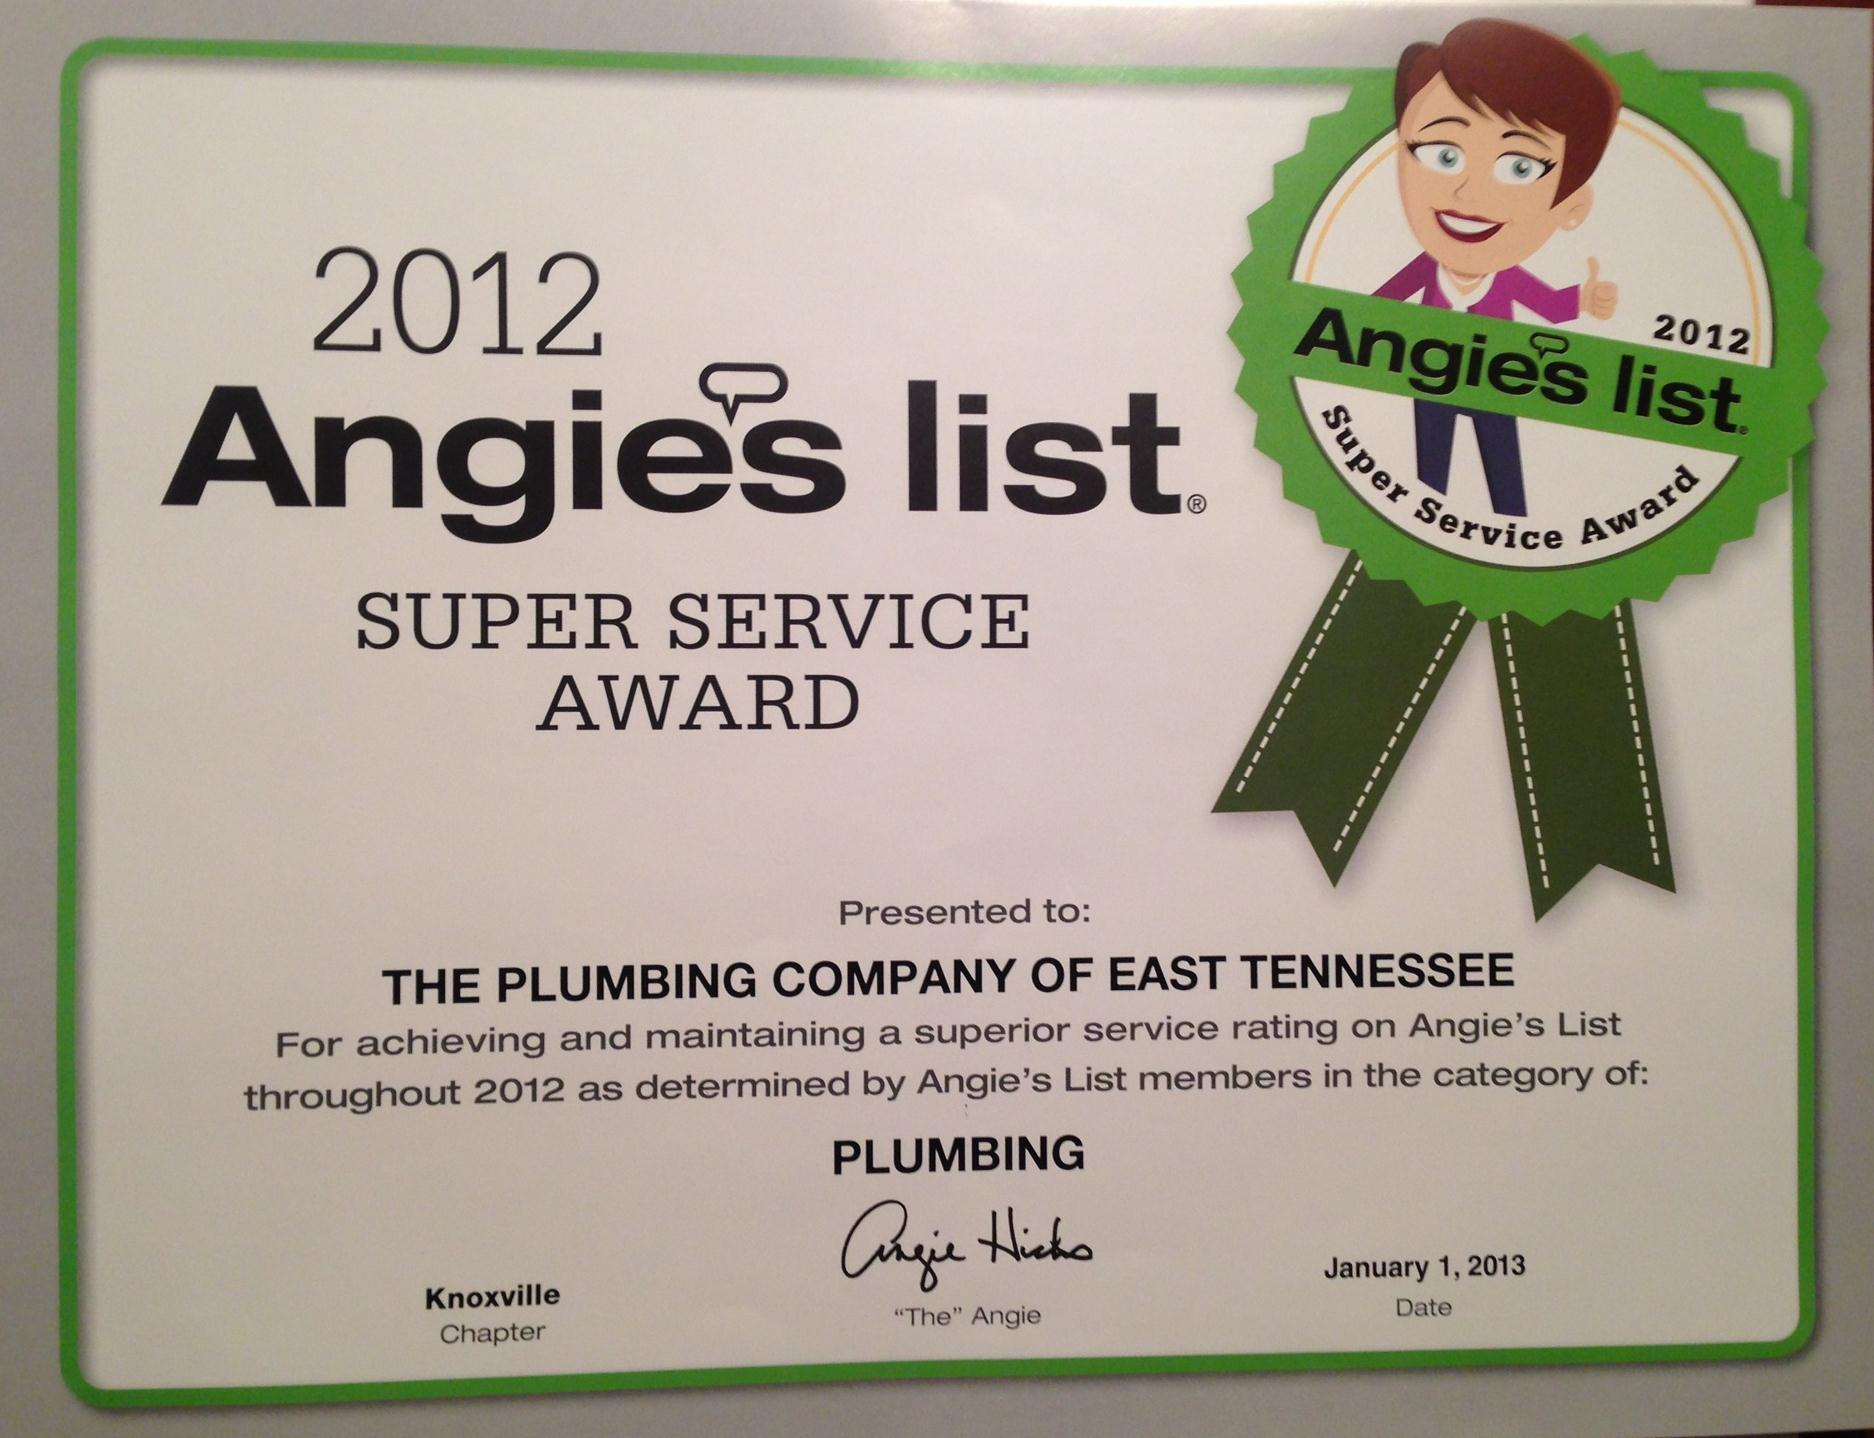 Plumbing Company the of East Tennessee